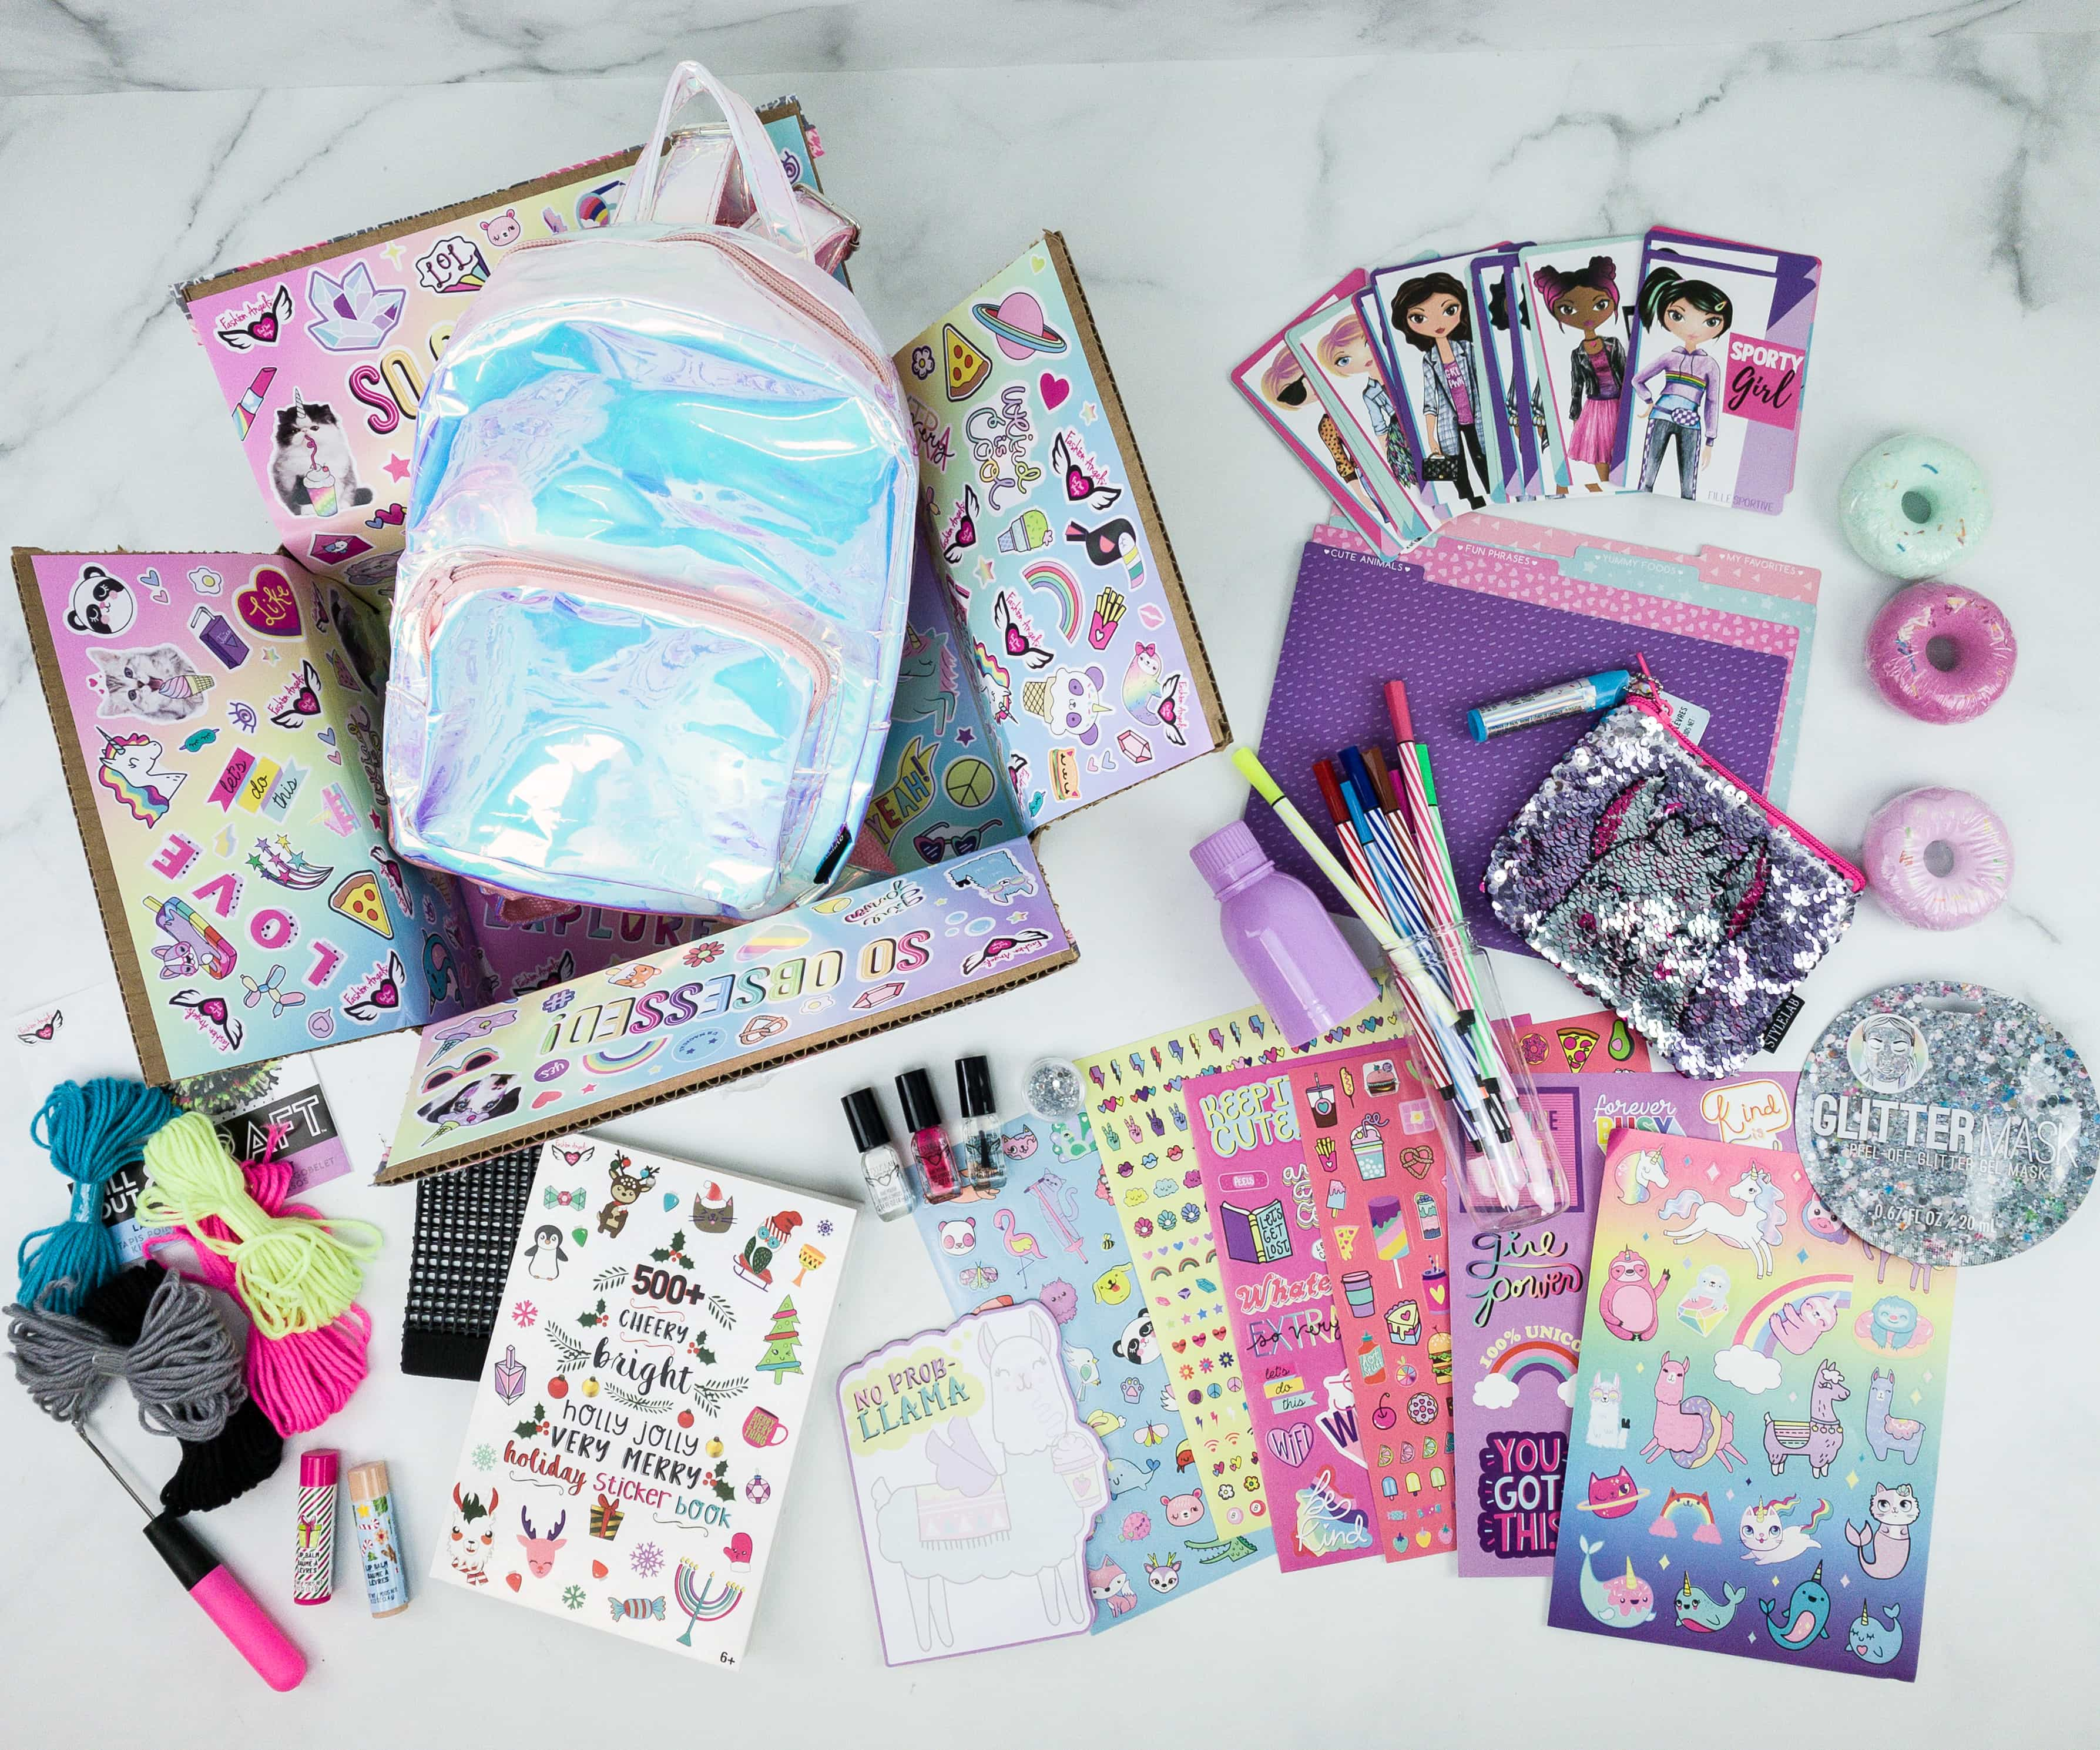 December 2019 Fashion Angels Find Your Wings Subscription Box Review + Coupon